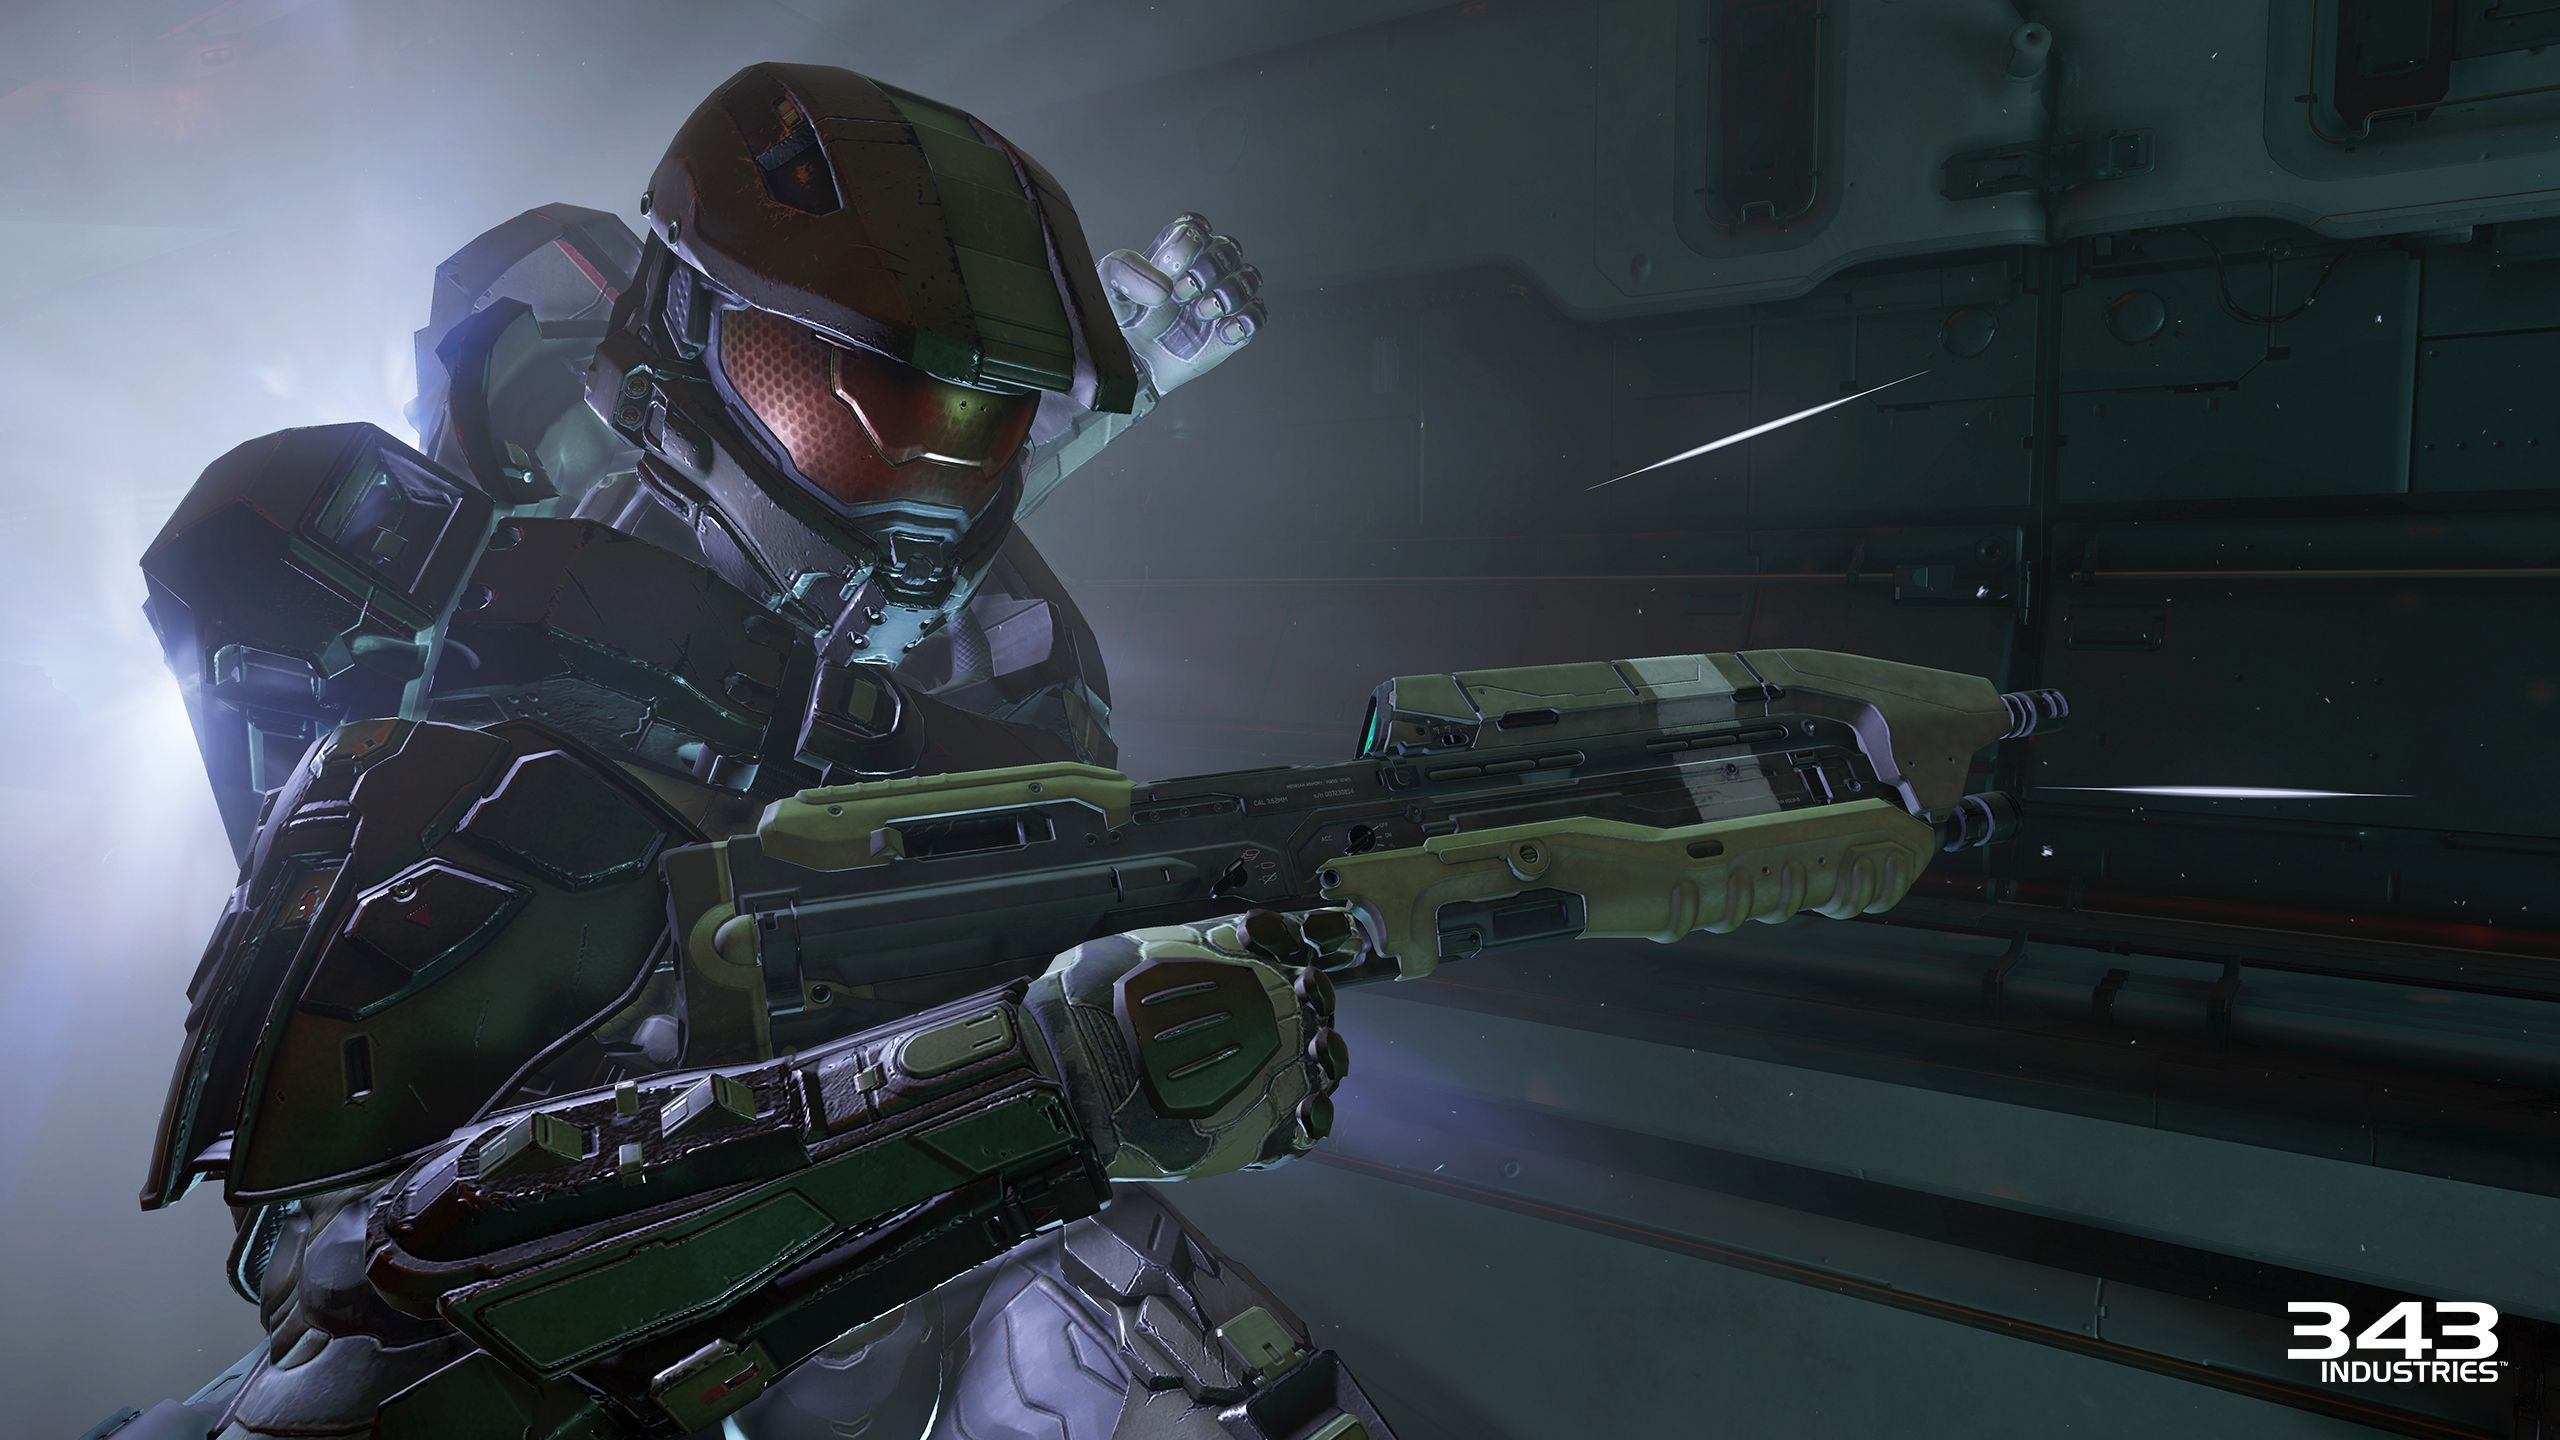 Halo 5 Blue Team Wallpaper Google Search Halo 5 Guardians